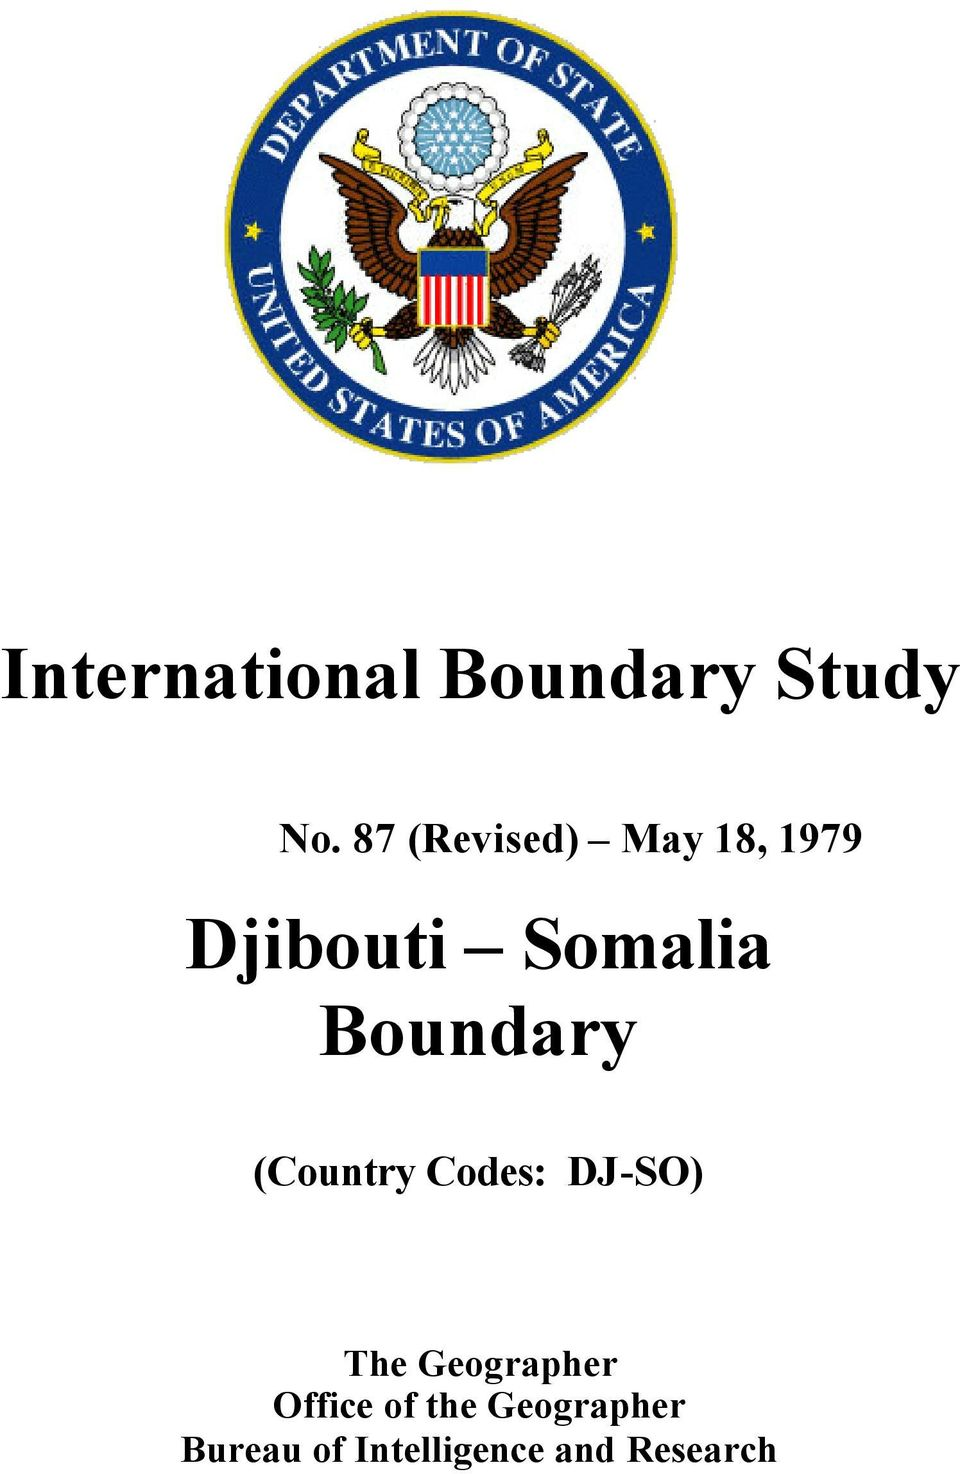 Boundary (Country Codes: DJ-SO) The